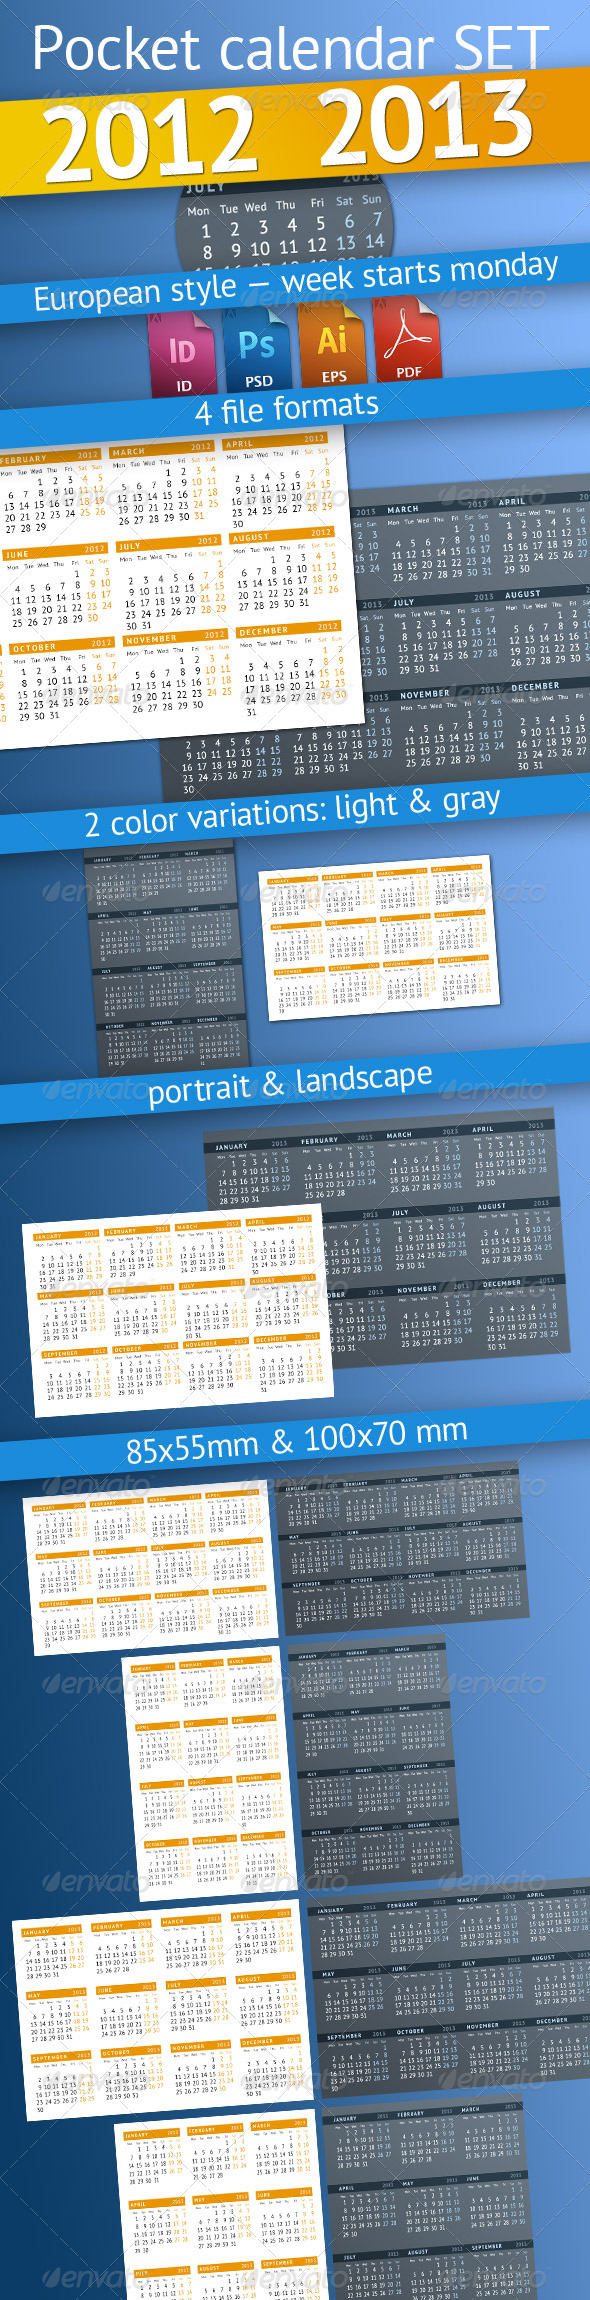 GraphicRiver Pocket calendar SET 2012-2013 2783527